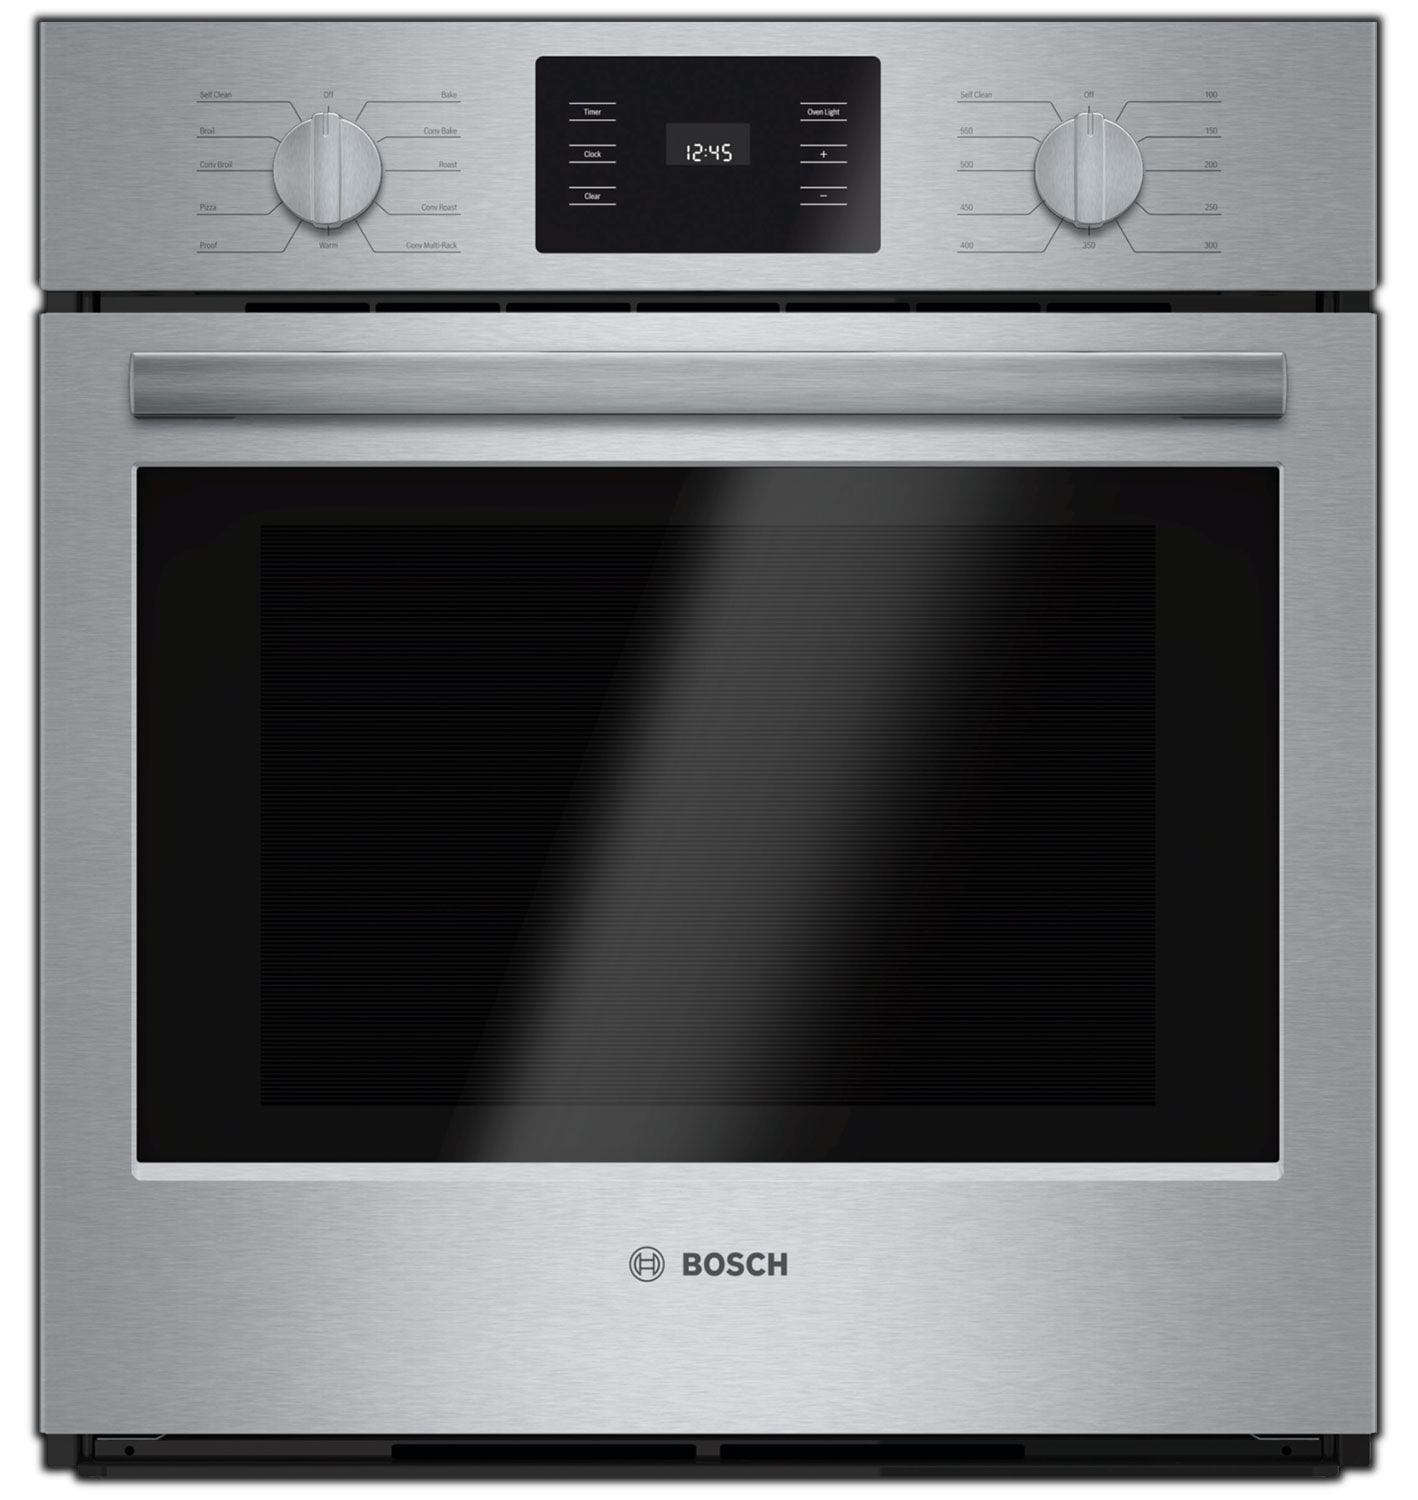 Cooking Products - Bosch Stainless Steel Wall Oven (3.9 Cu. Ft.) - HBN5451UC